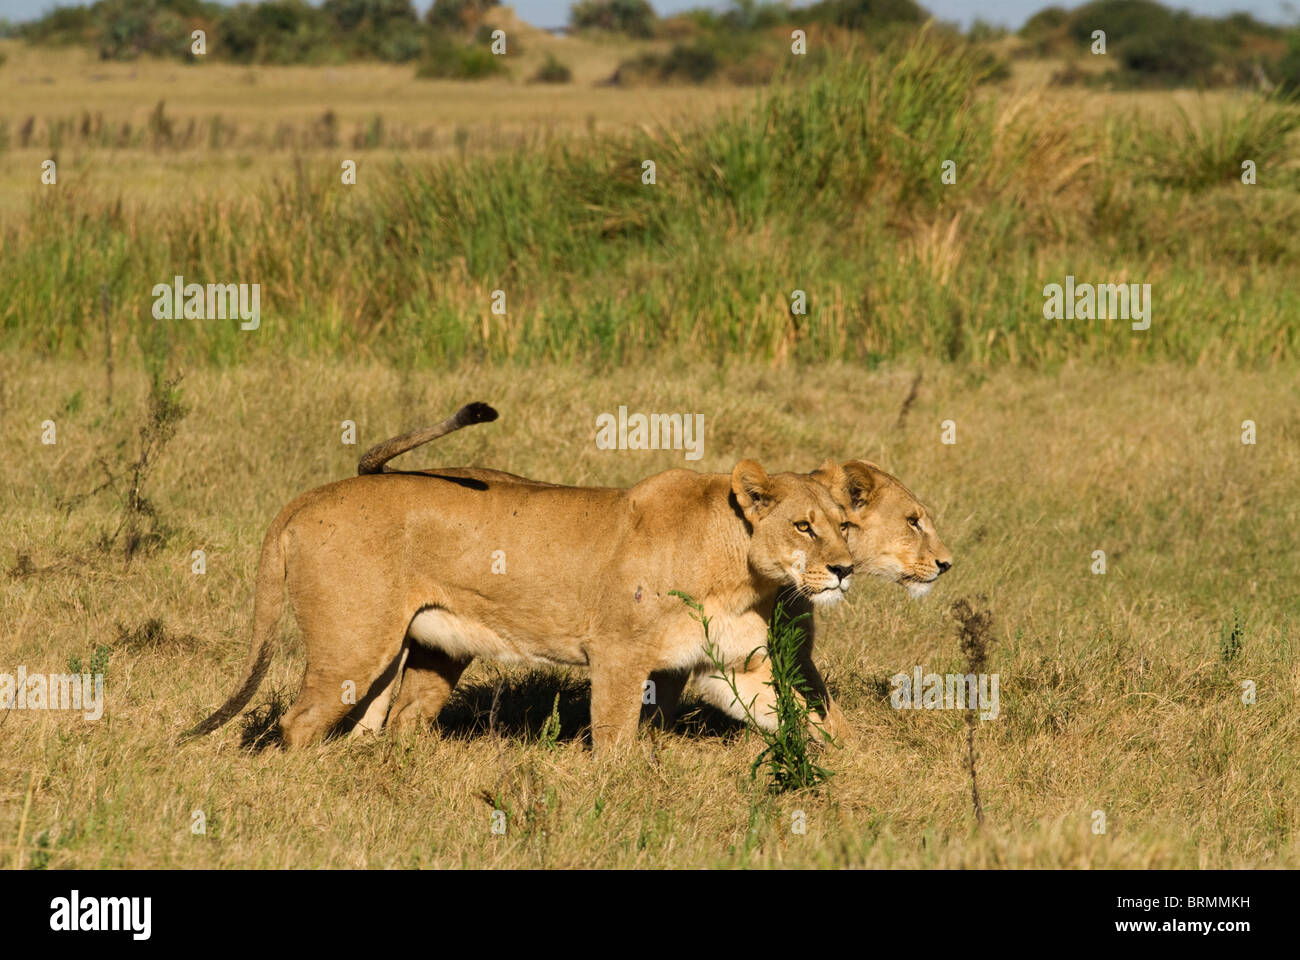 lionesses-walking-together-in-grassland-